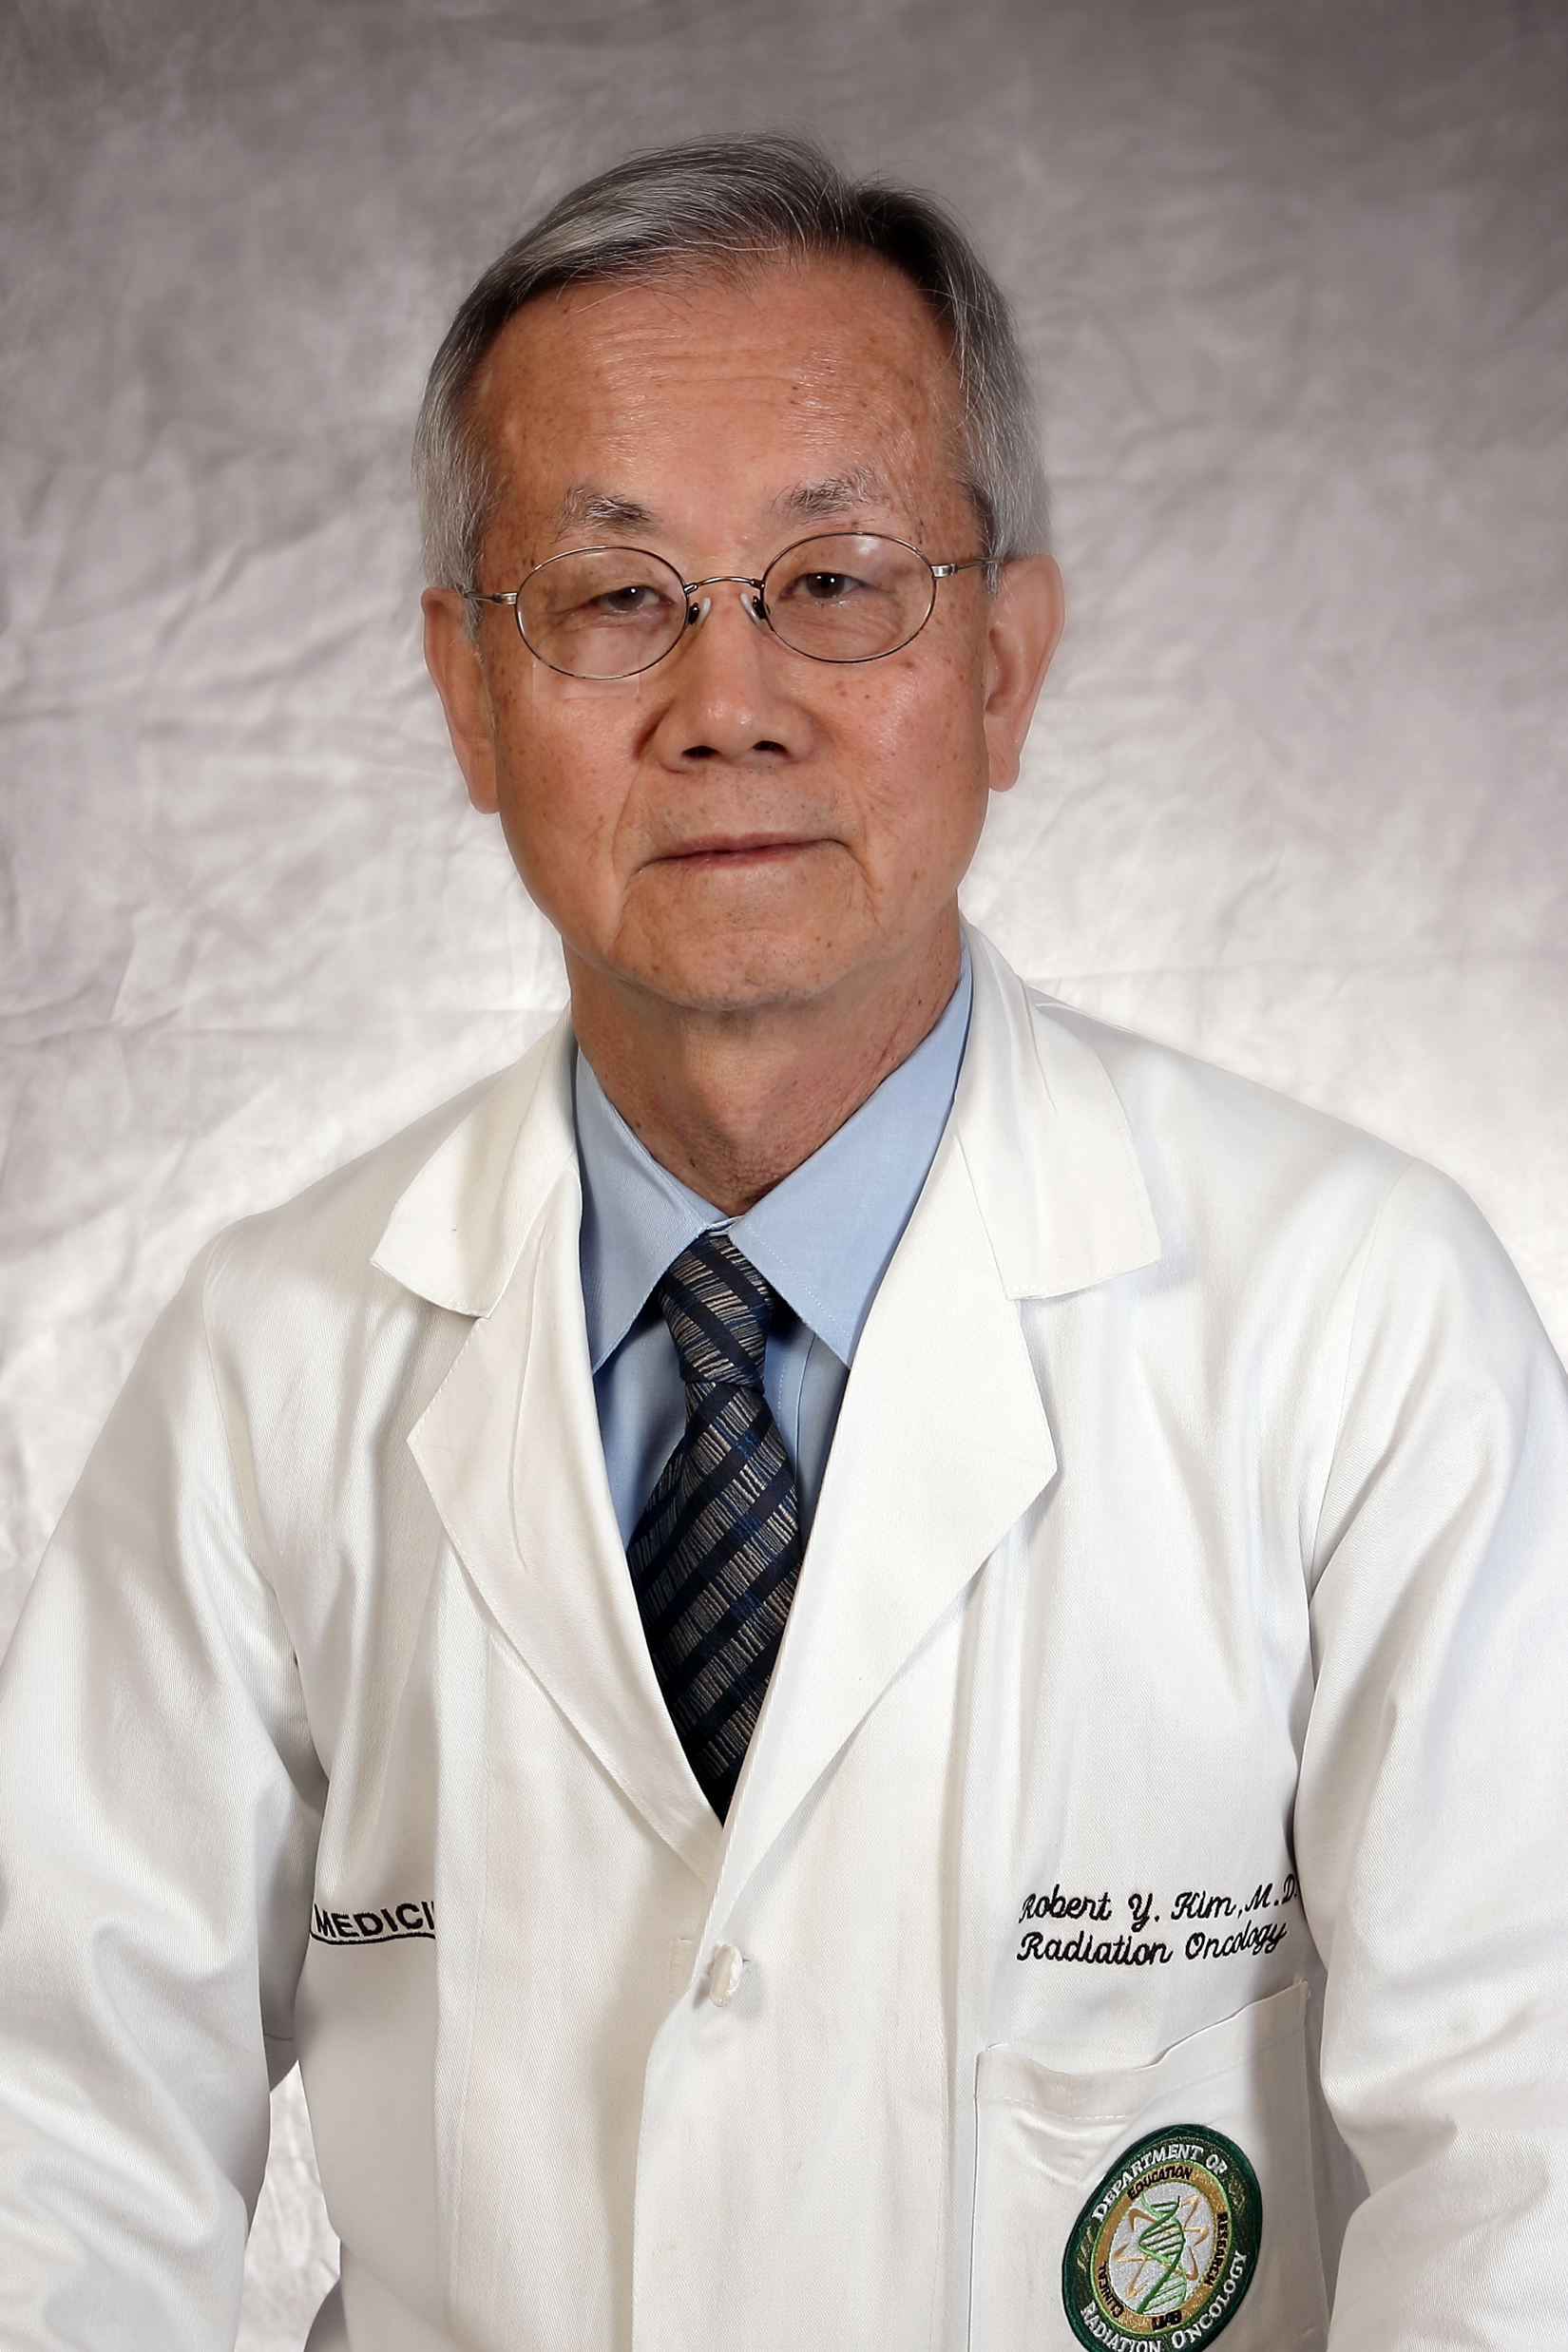 Robert Kim uab radiation oncology